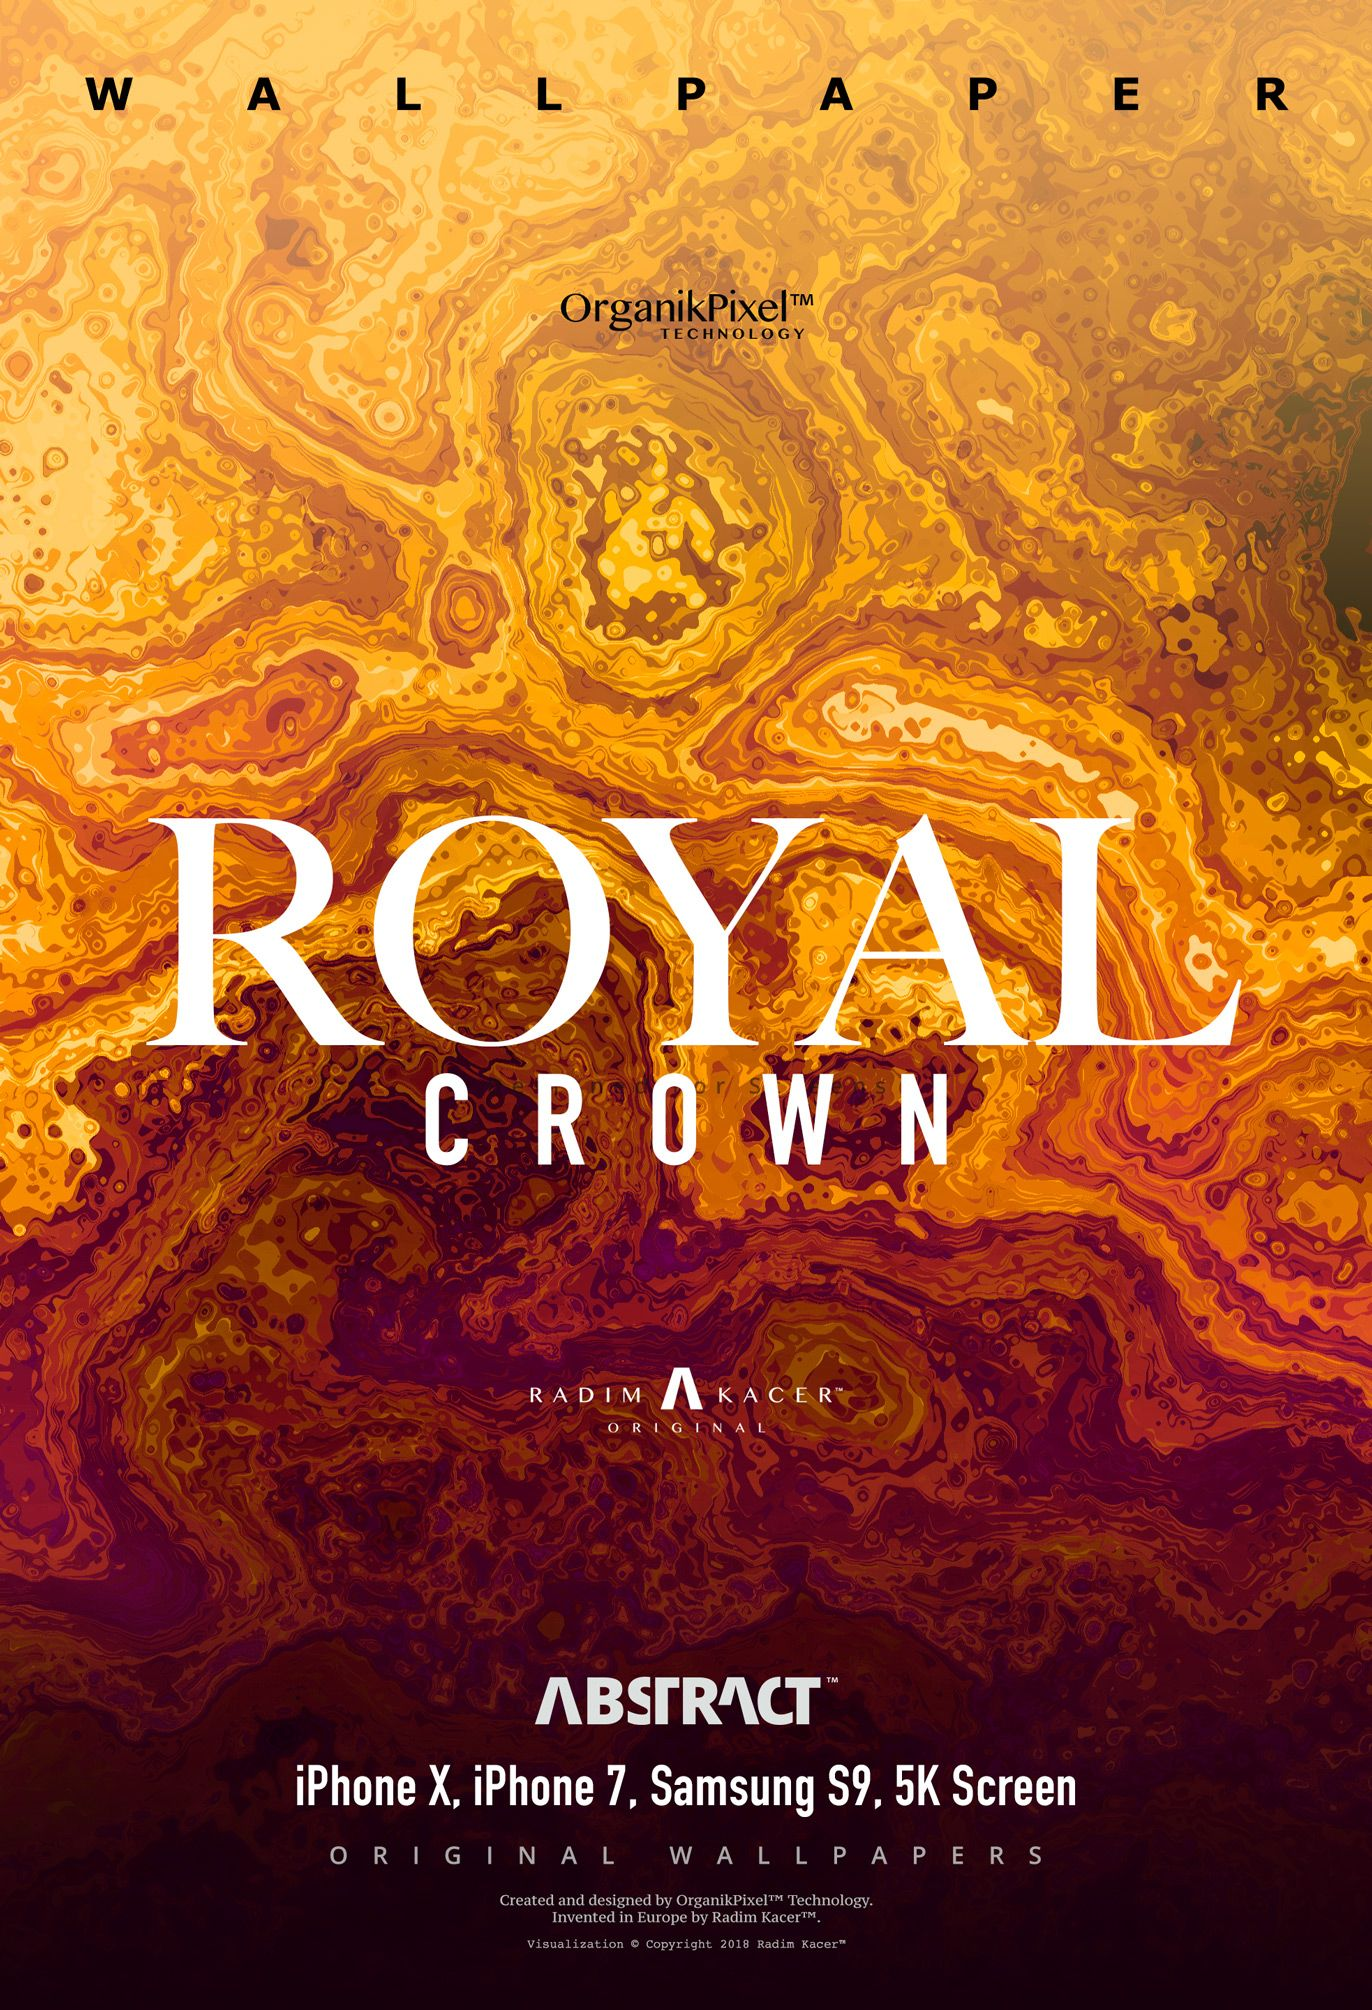 Royal Crown Original Abstract Wallpaper For 5k Screens And